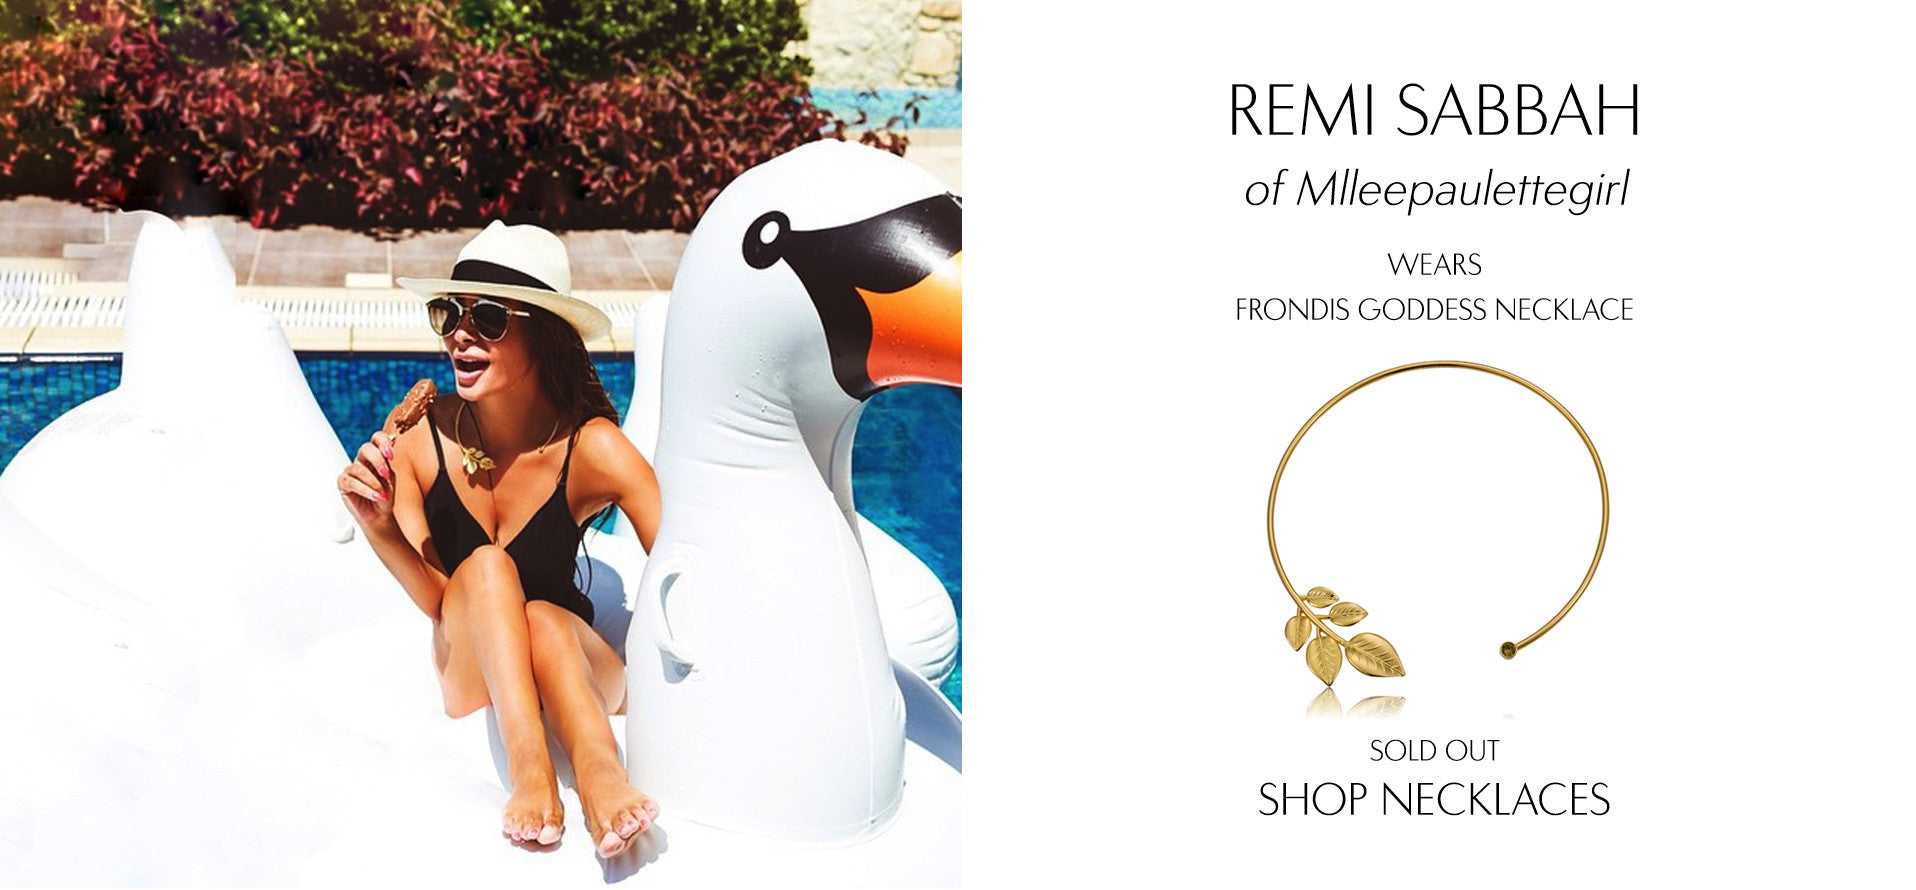 Mlleepaulettegirl - Fashion Blog by Rèmi Sabbah wears Sarina Suriano Frondis Goddess leaf necklace